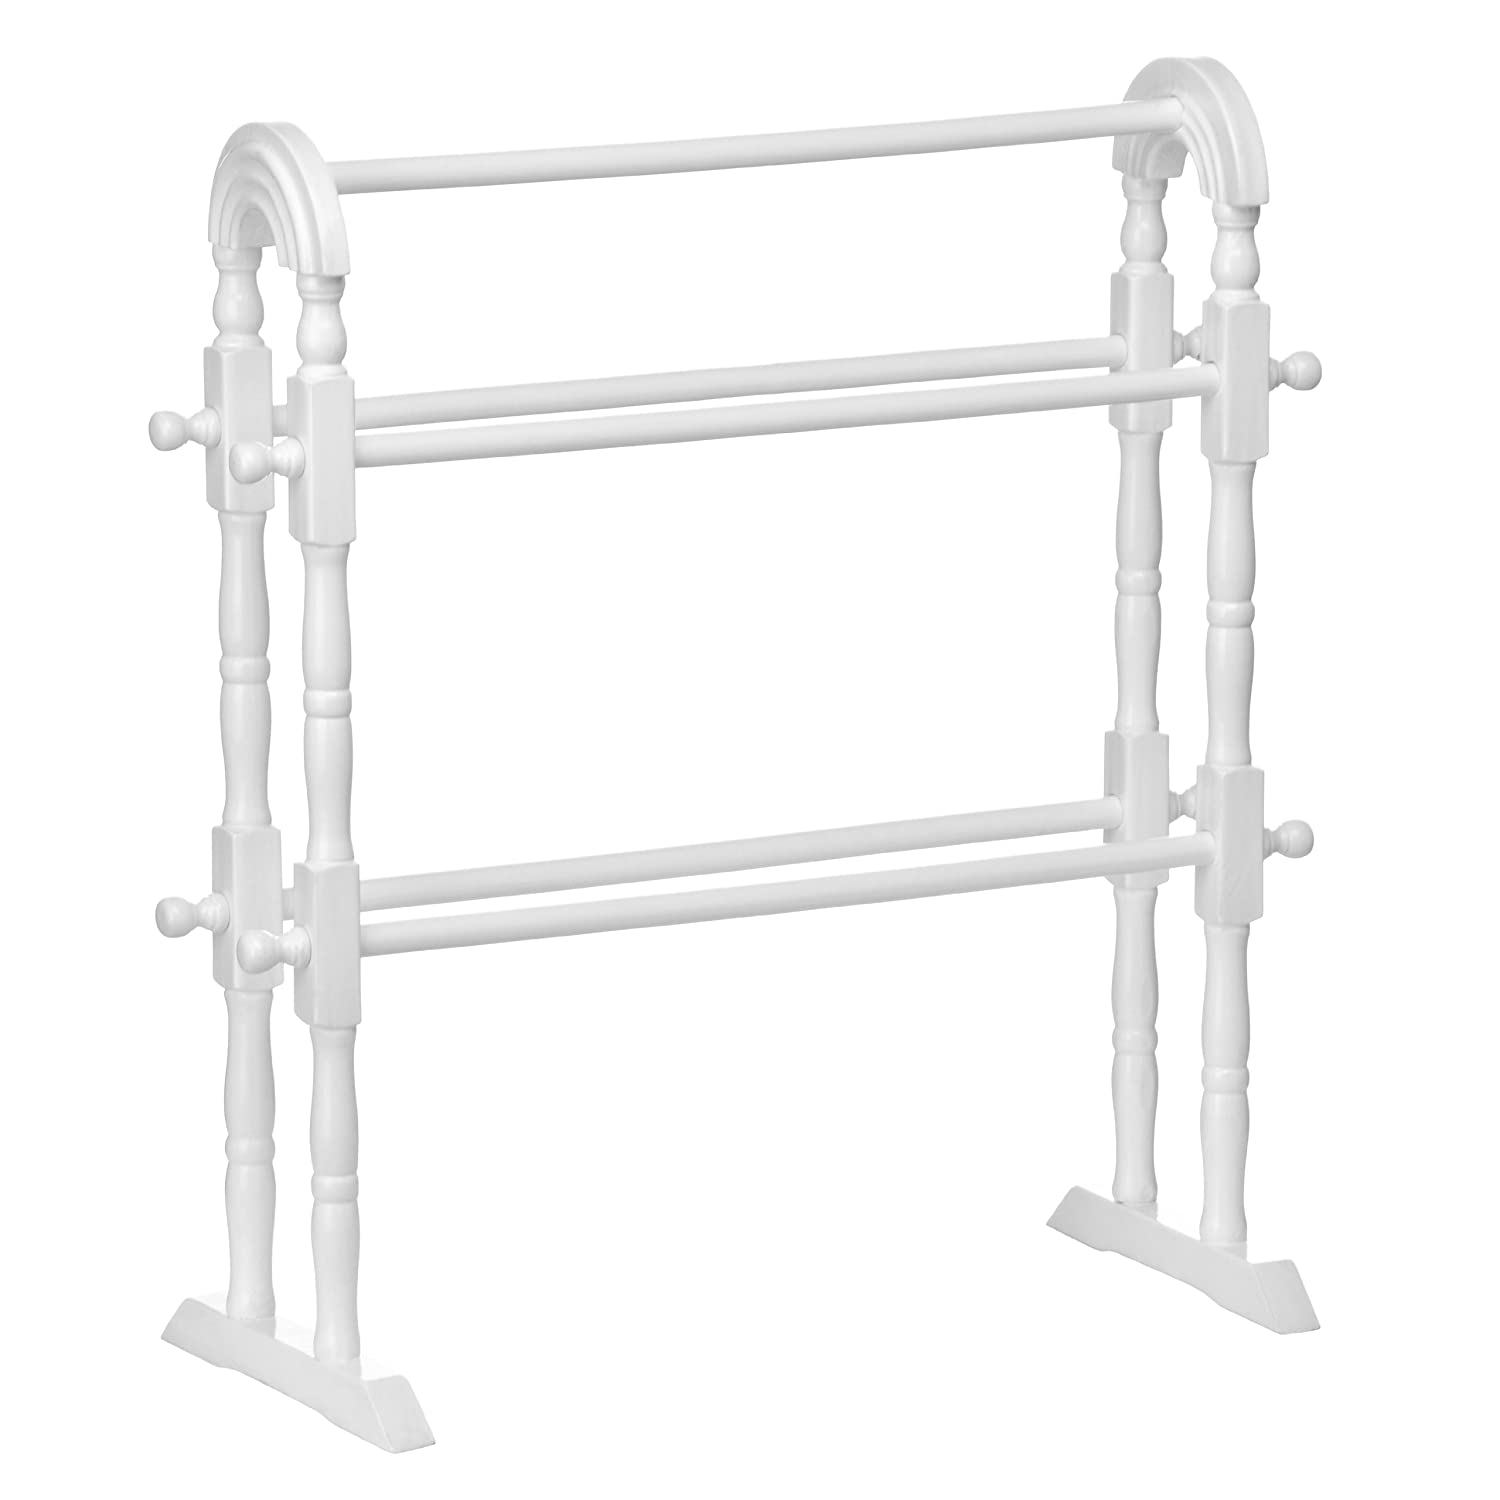 stand tiers towel rail marvelous bathroom wall hqdeal bath mounted holder rack